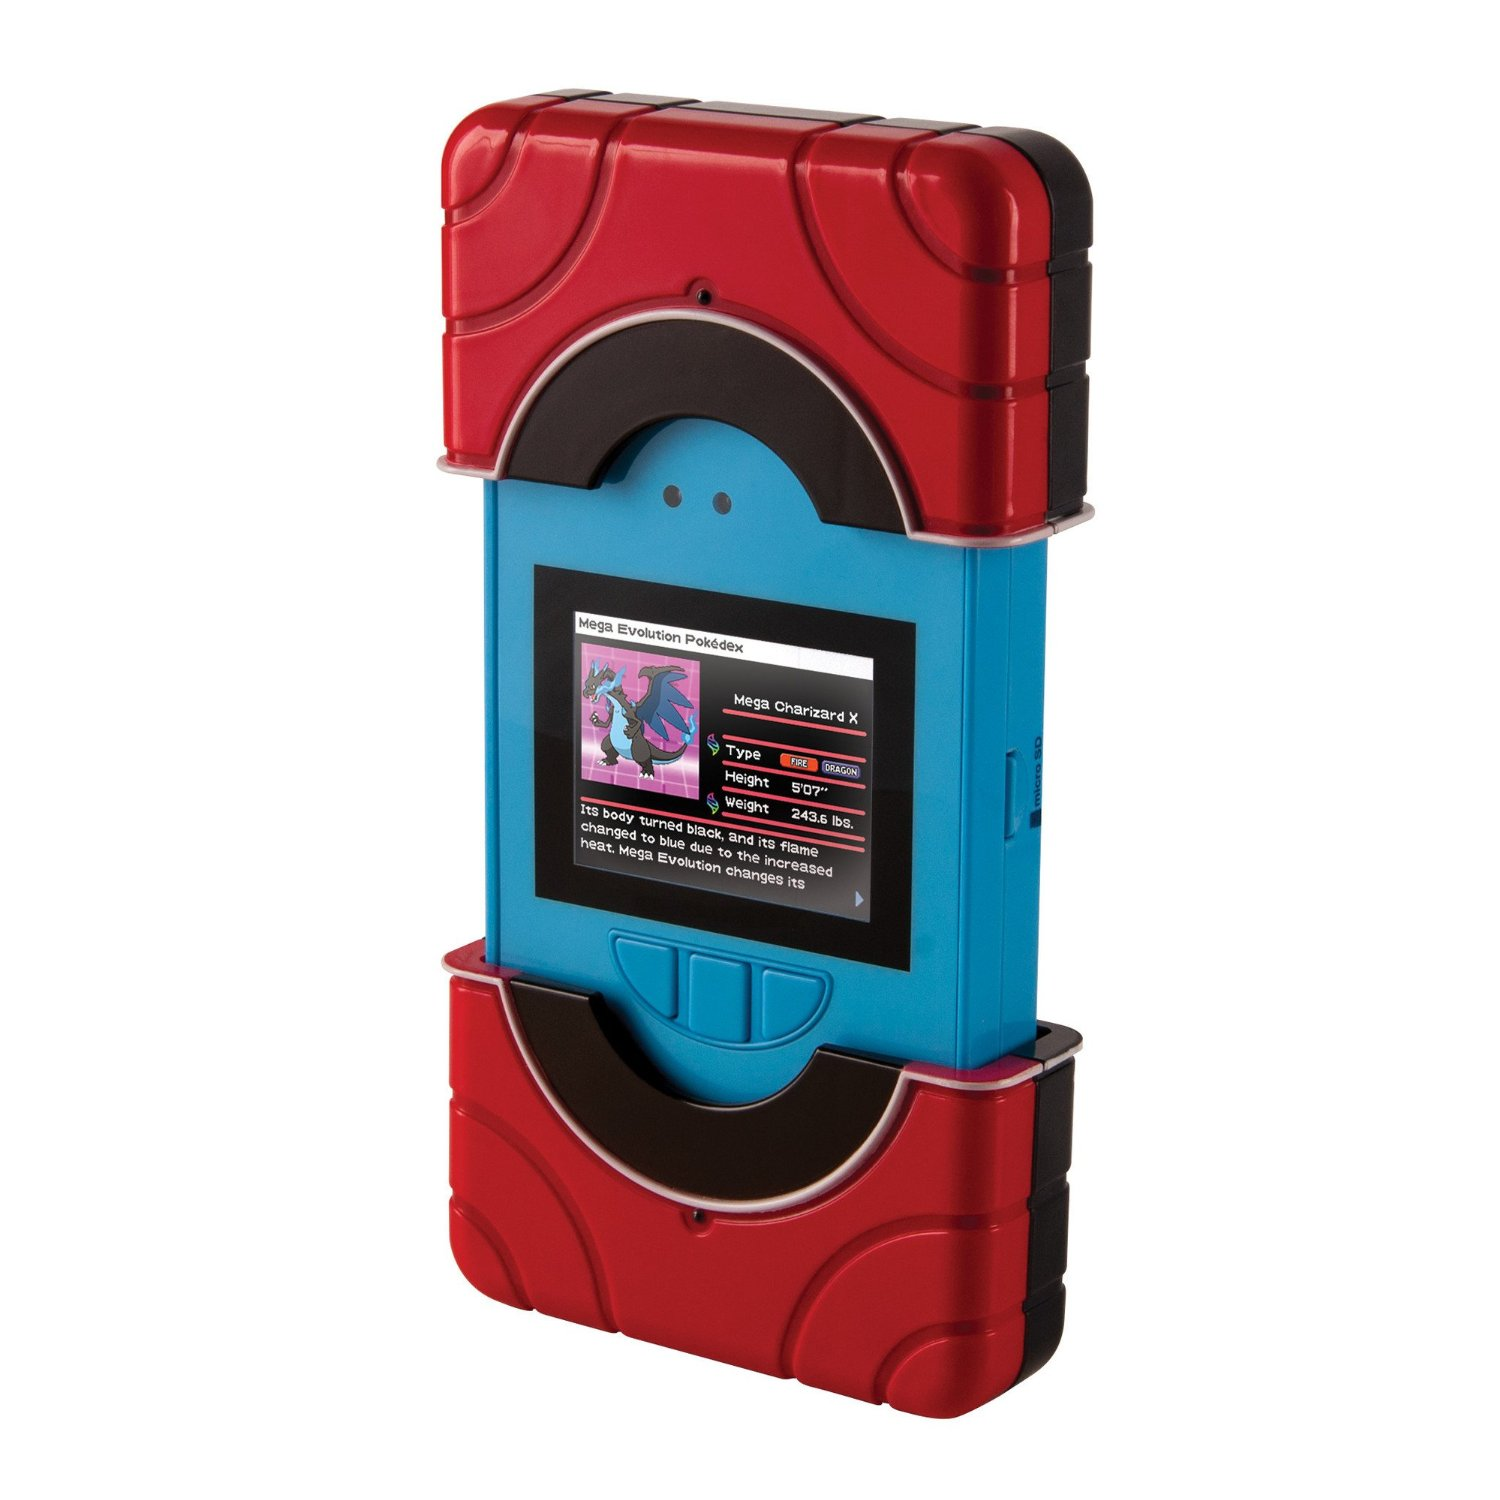 9-pokemon-pokedex-interactivo